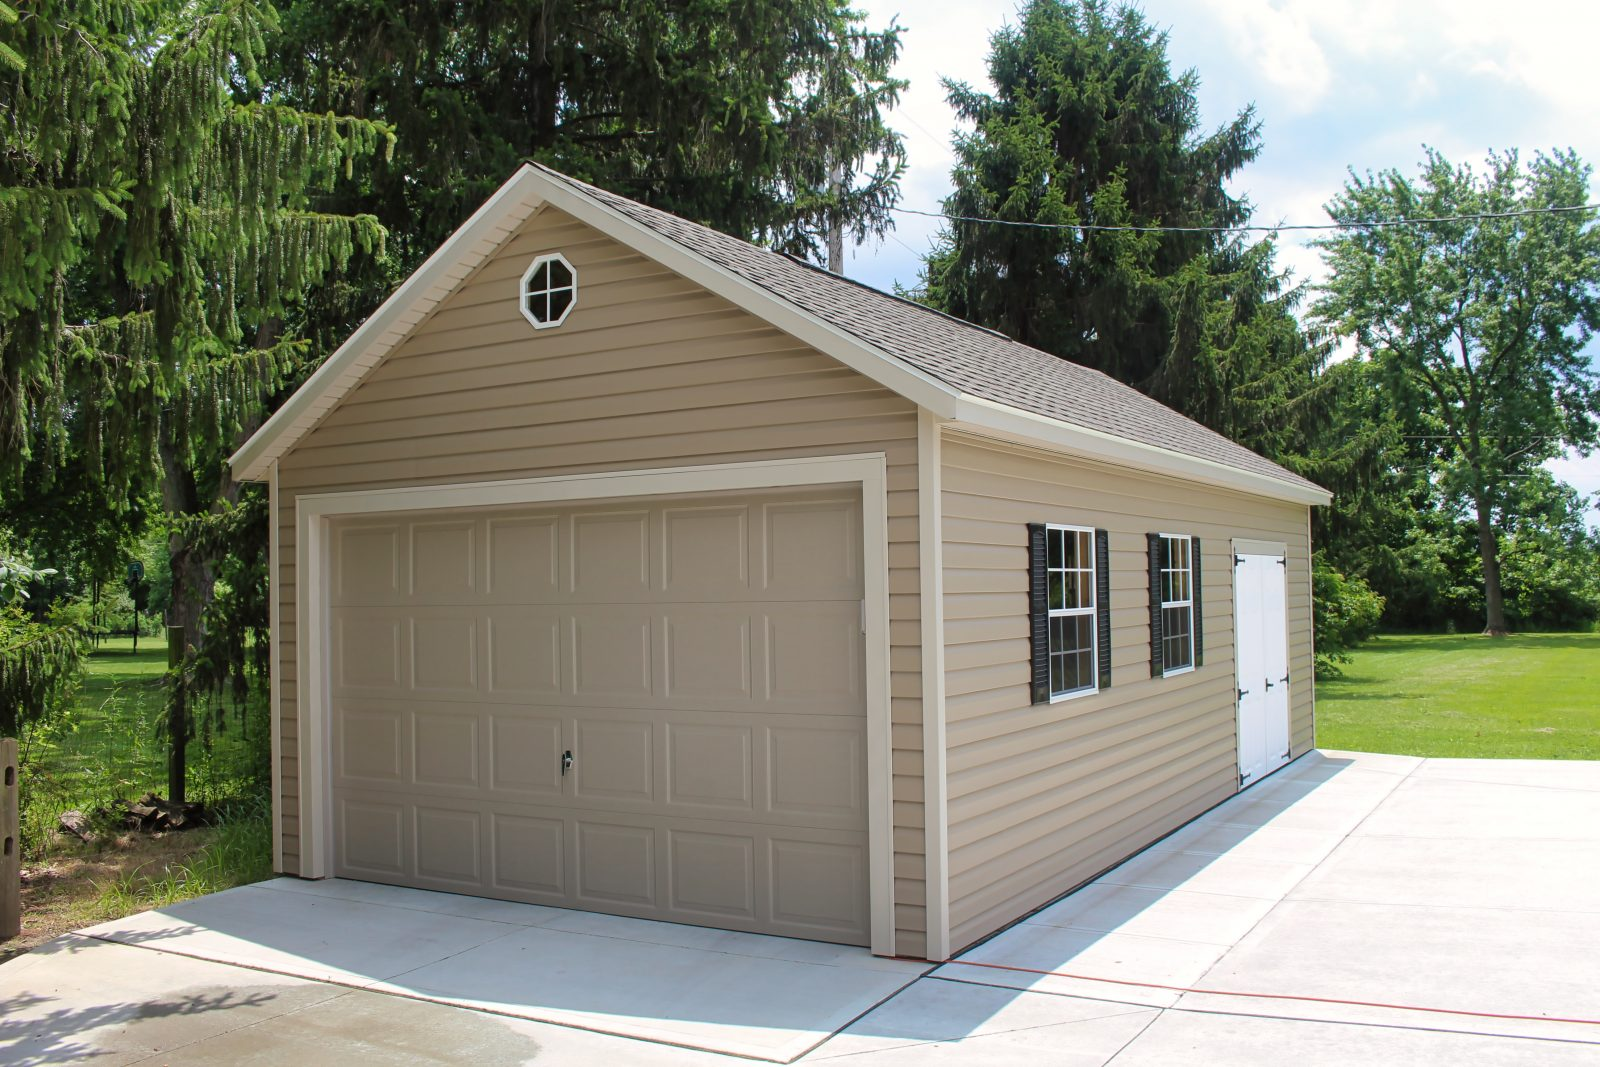 Gable Prefab Garages 2020 Models Quality Garages In Ohio